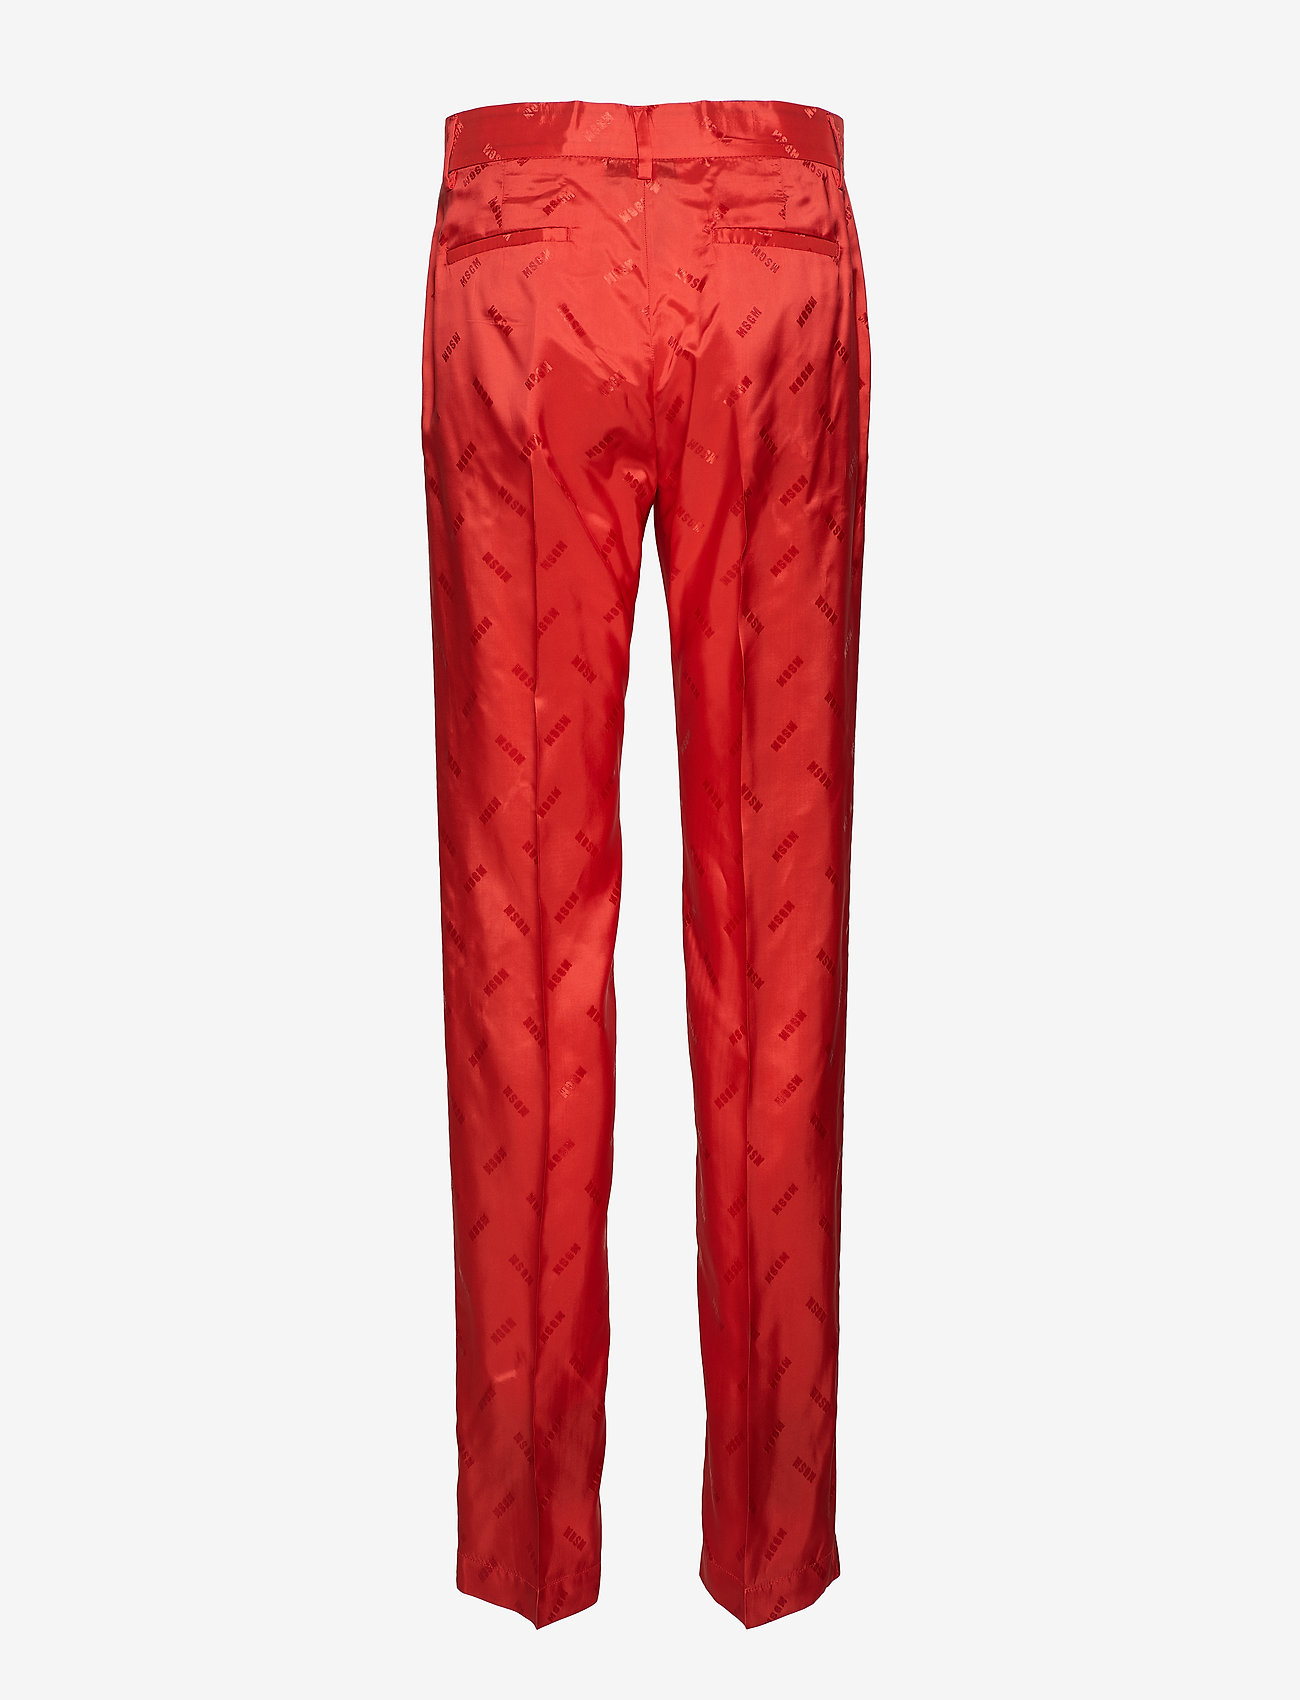 MSGM - PANT - straight leg trousers - red